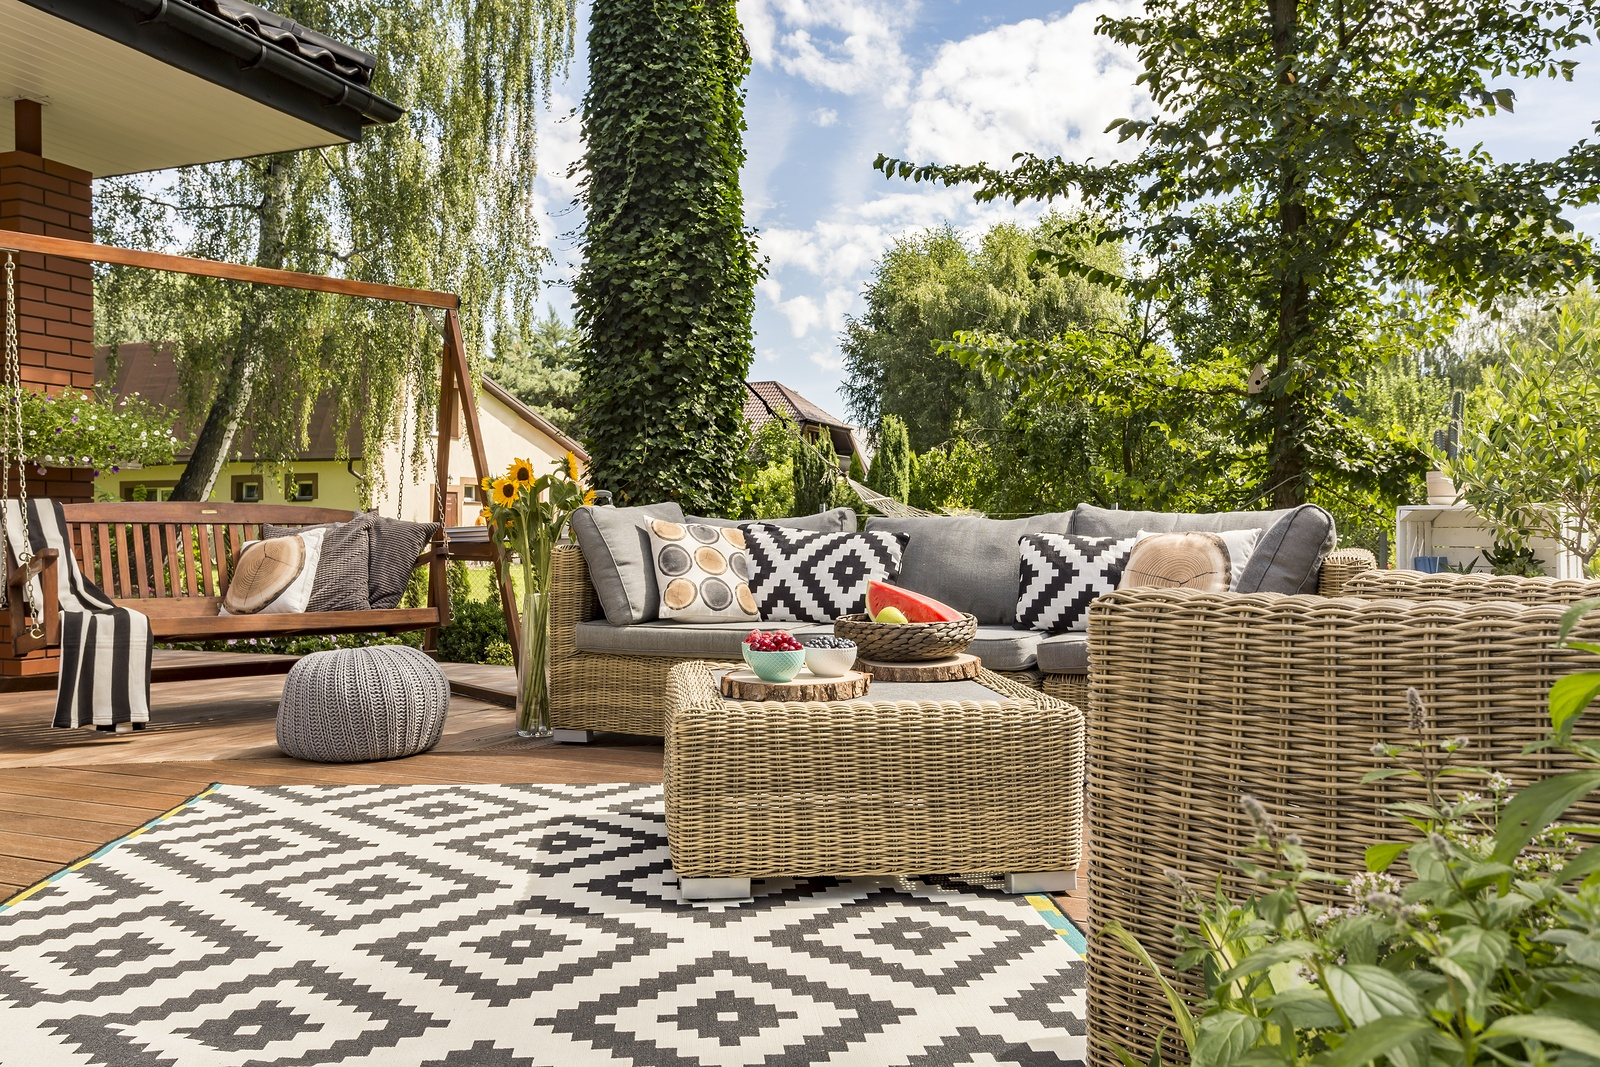 bigstock-New-Villa-Patio-Idea-144283304.jpg